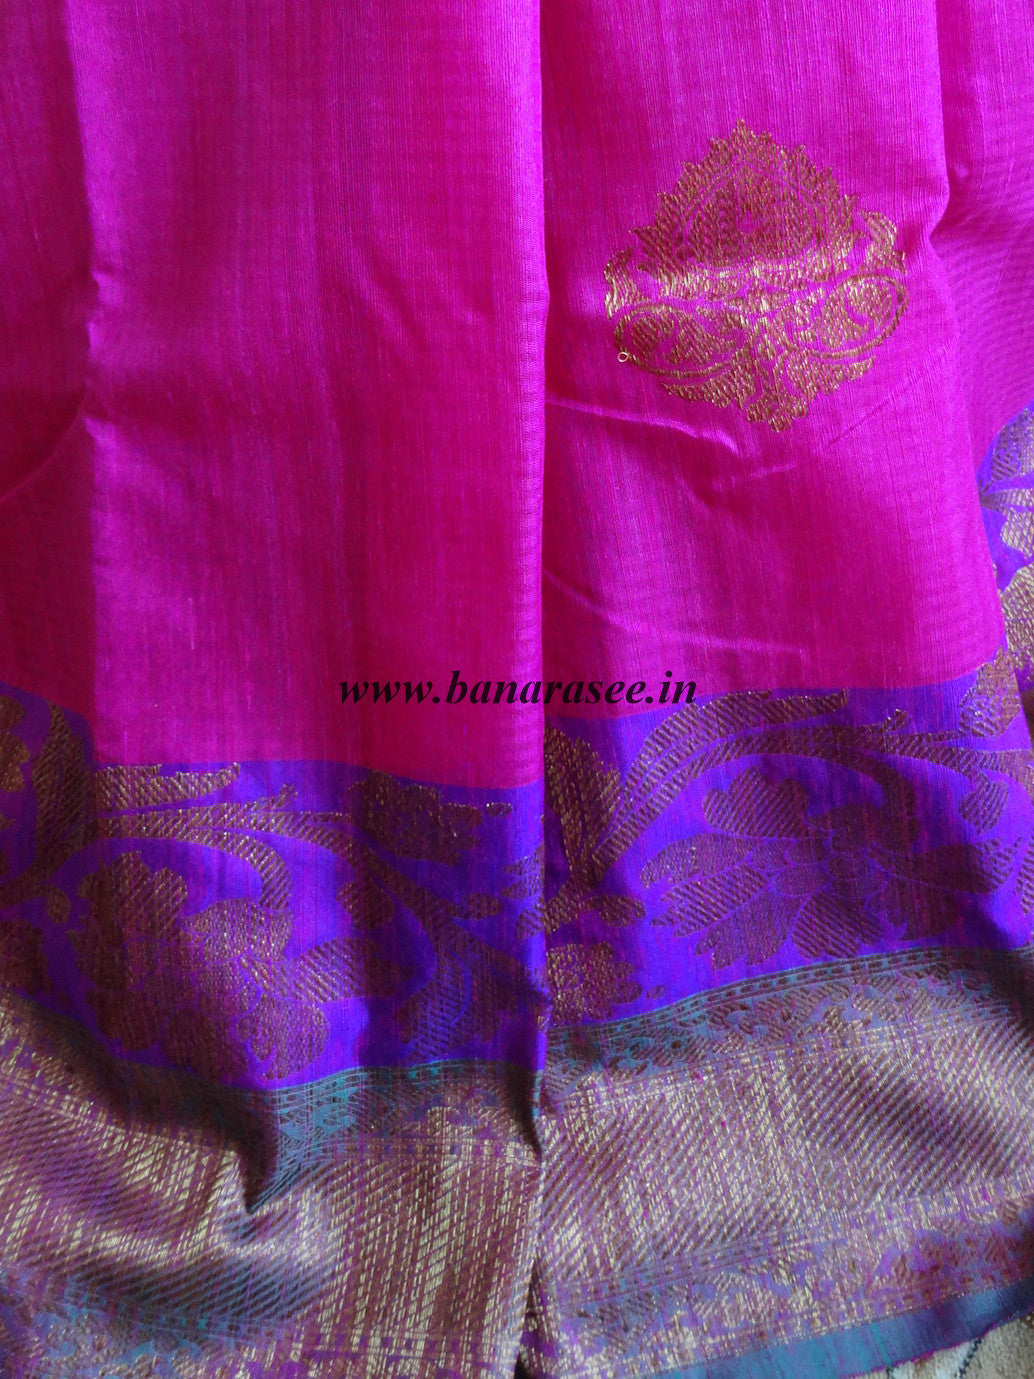 Banarasee/Banarasee Pure Handloom Dupion Silk Sari With Broad Border-Magenta